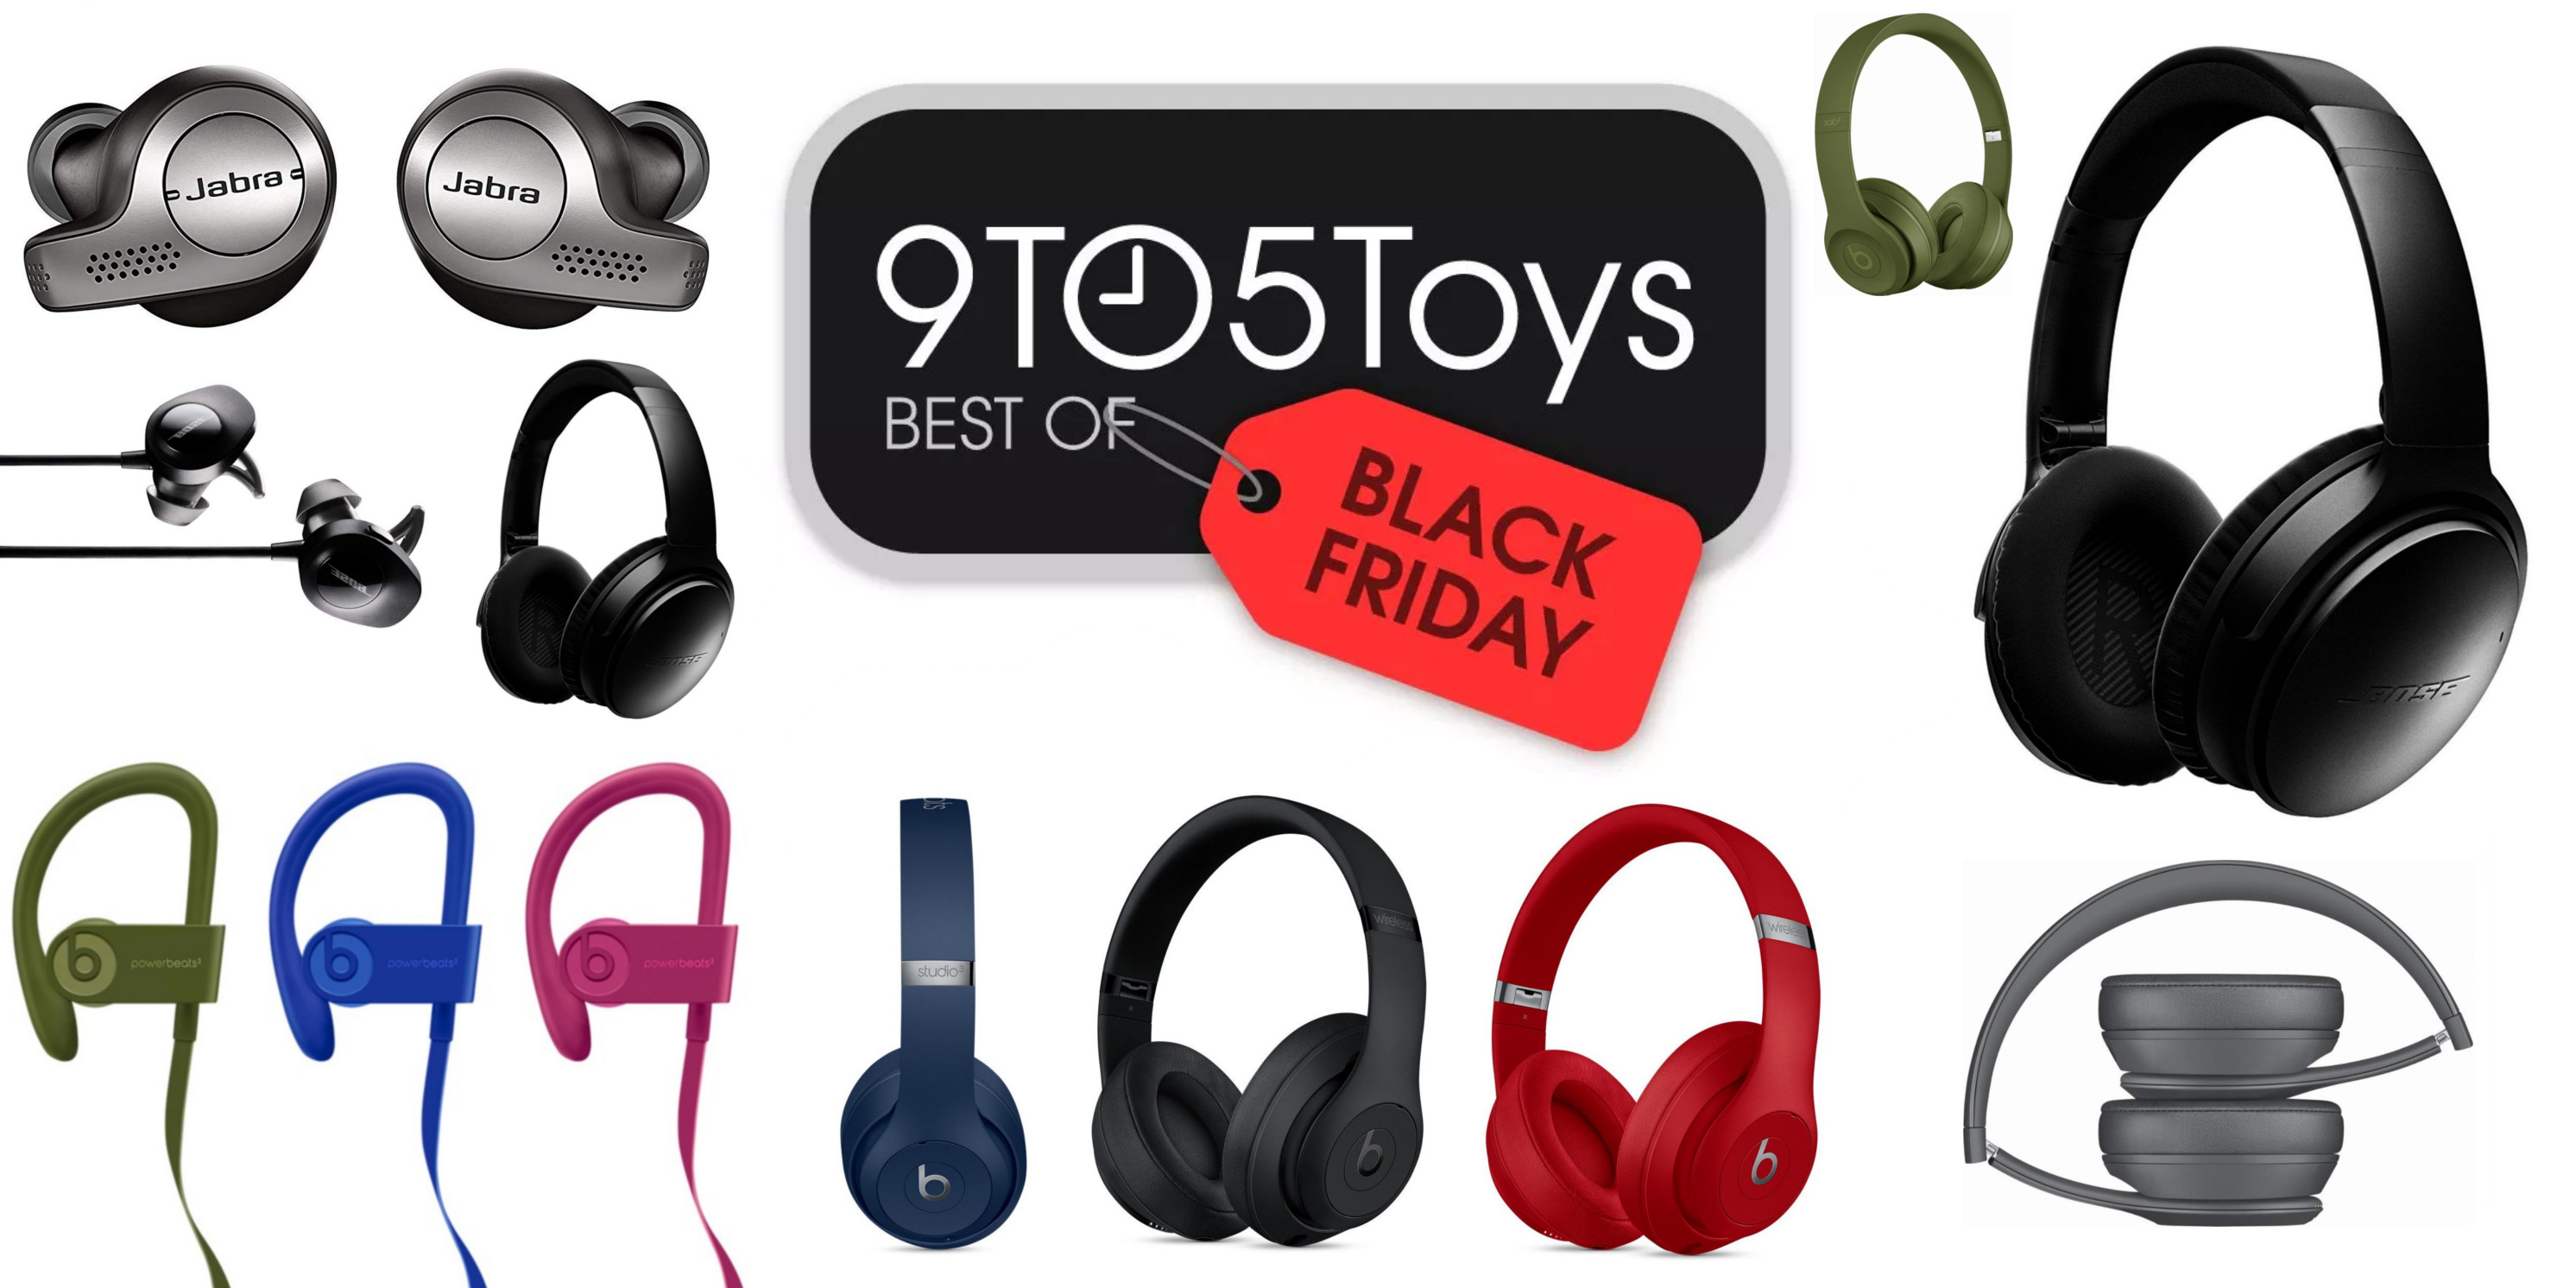 Best Of Black Friday 2018 Headphones Bose Quietcomfort Beats Truly Wireless More 9to5toys